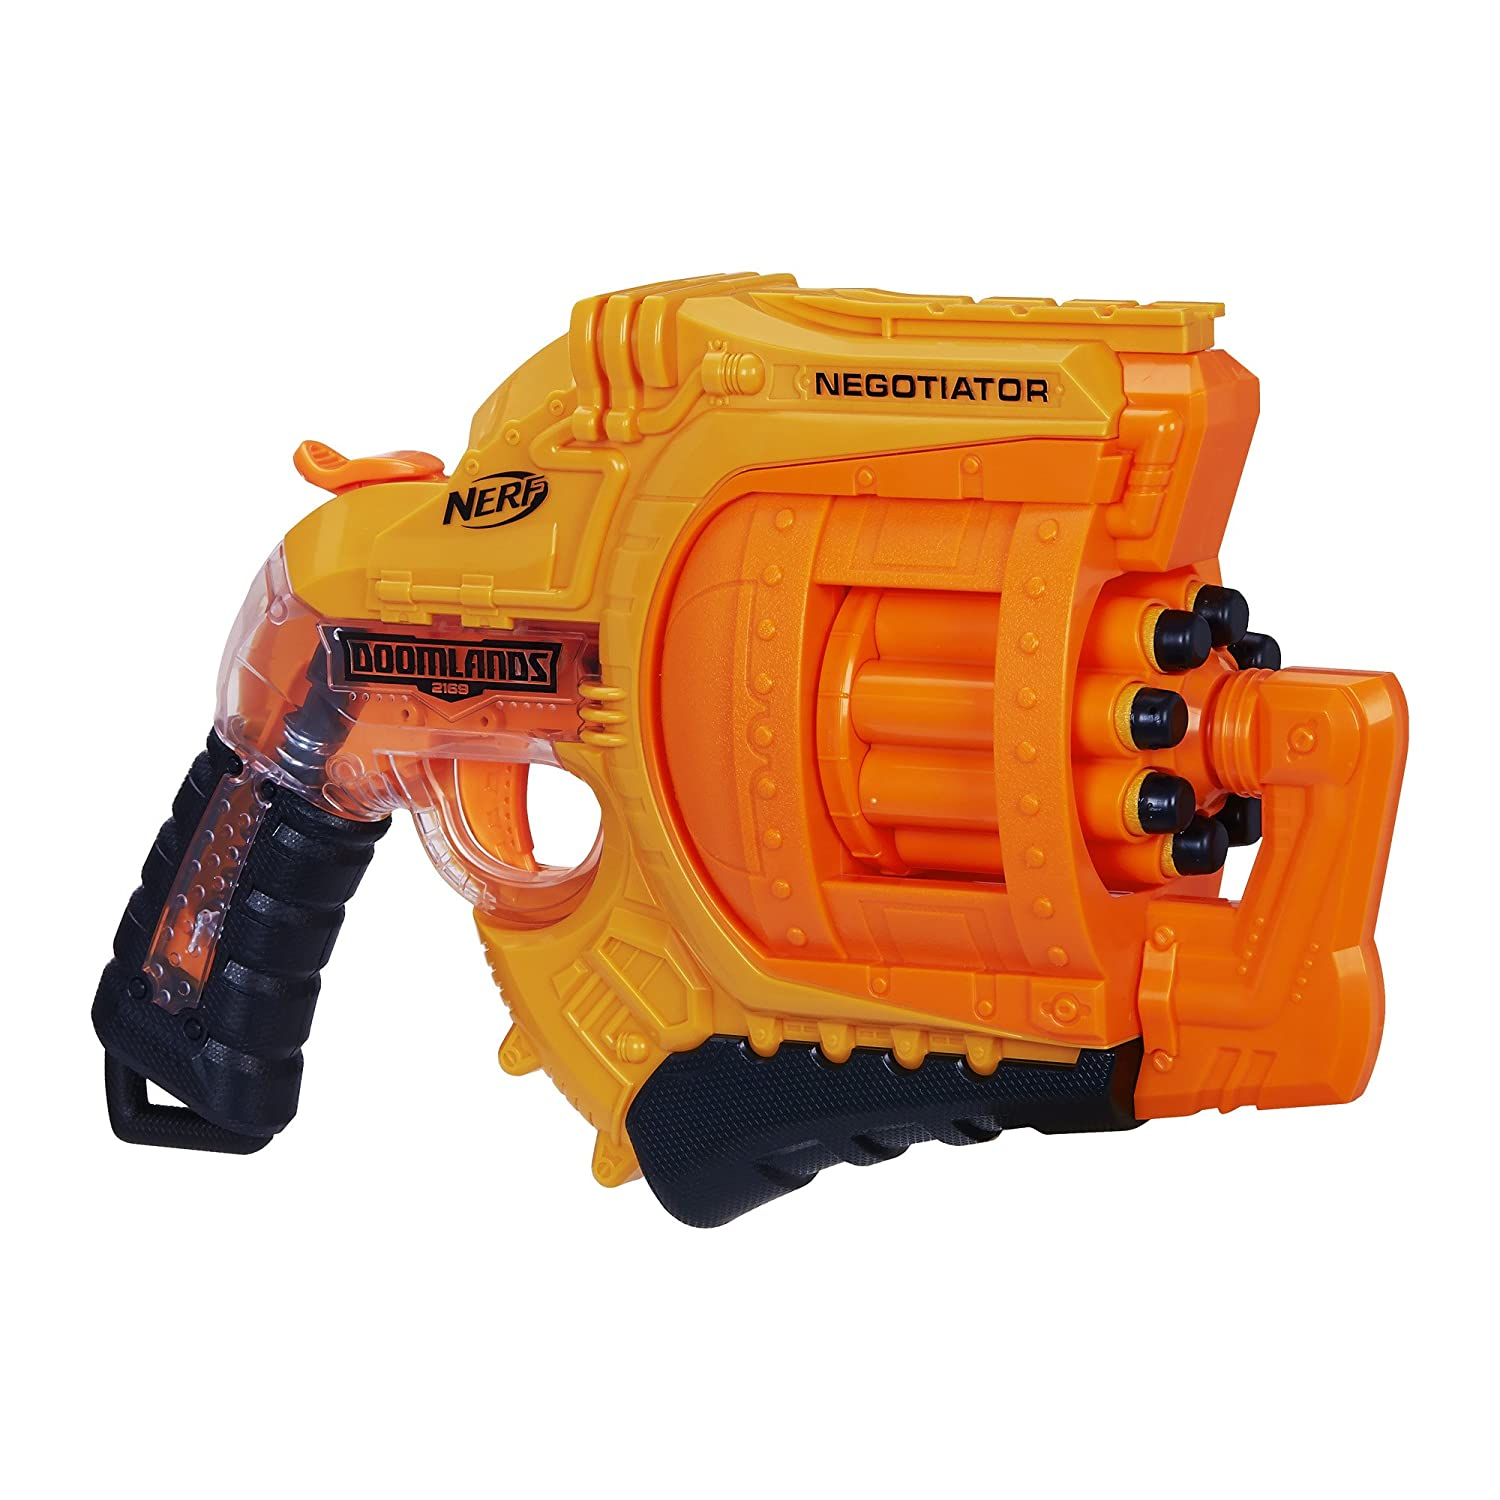 Amazon.com: Nerf Doomlands 2169 Negotiator Blaster (Amazon Exclusive): Toys  & Games